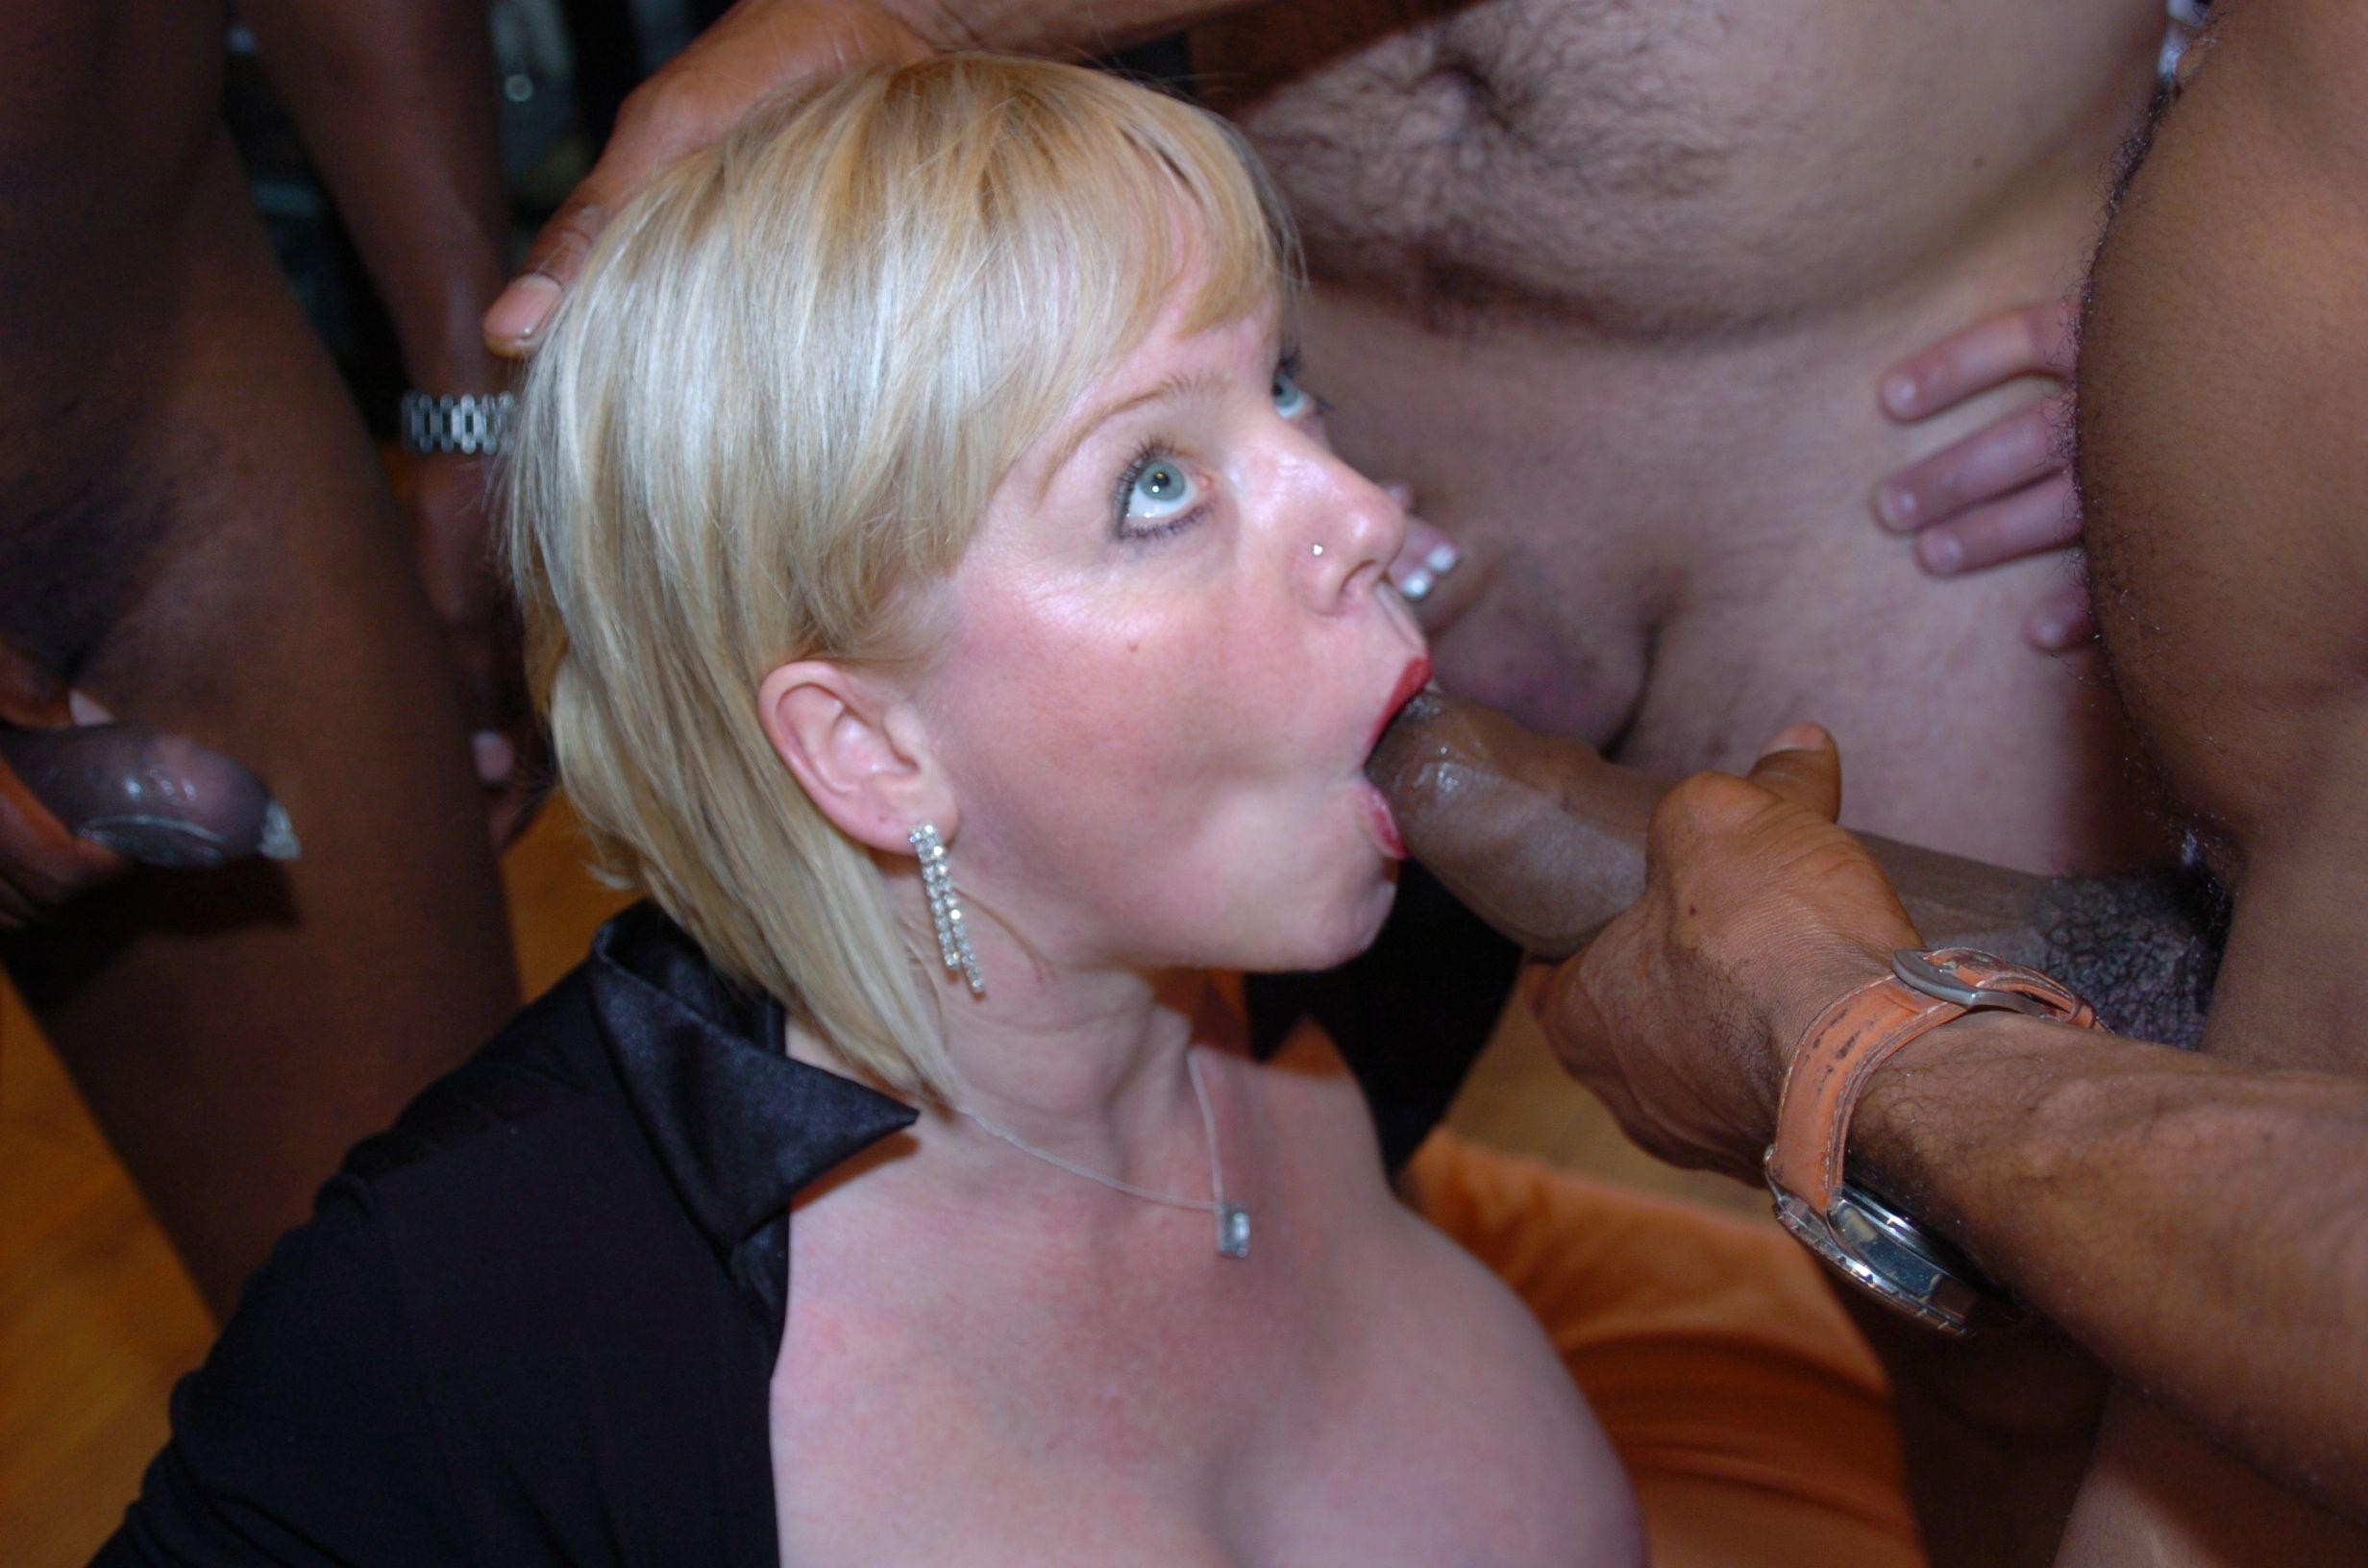 Gianna michaels sucking